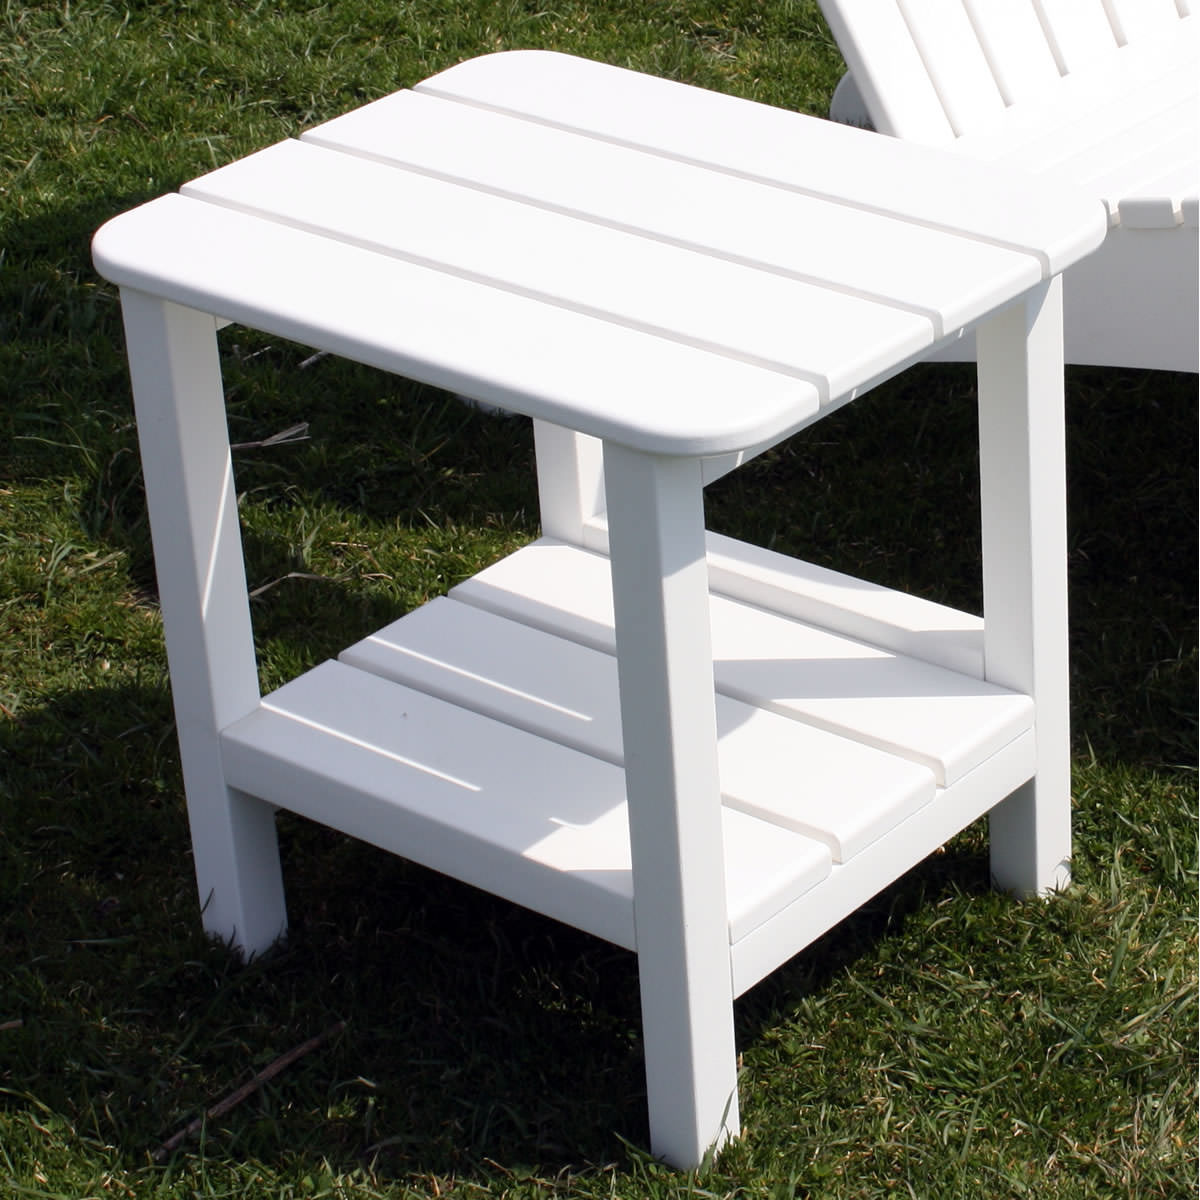 Sister Bay Rectangular End Table - 15 x 19 inch